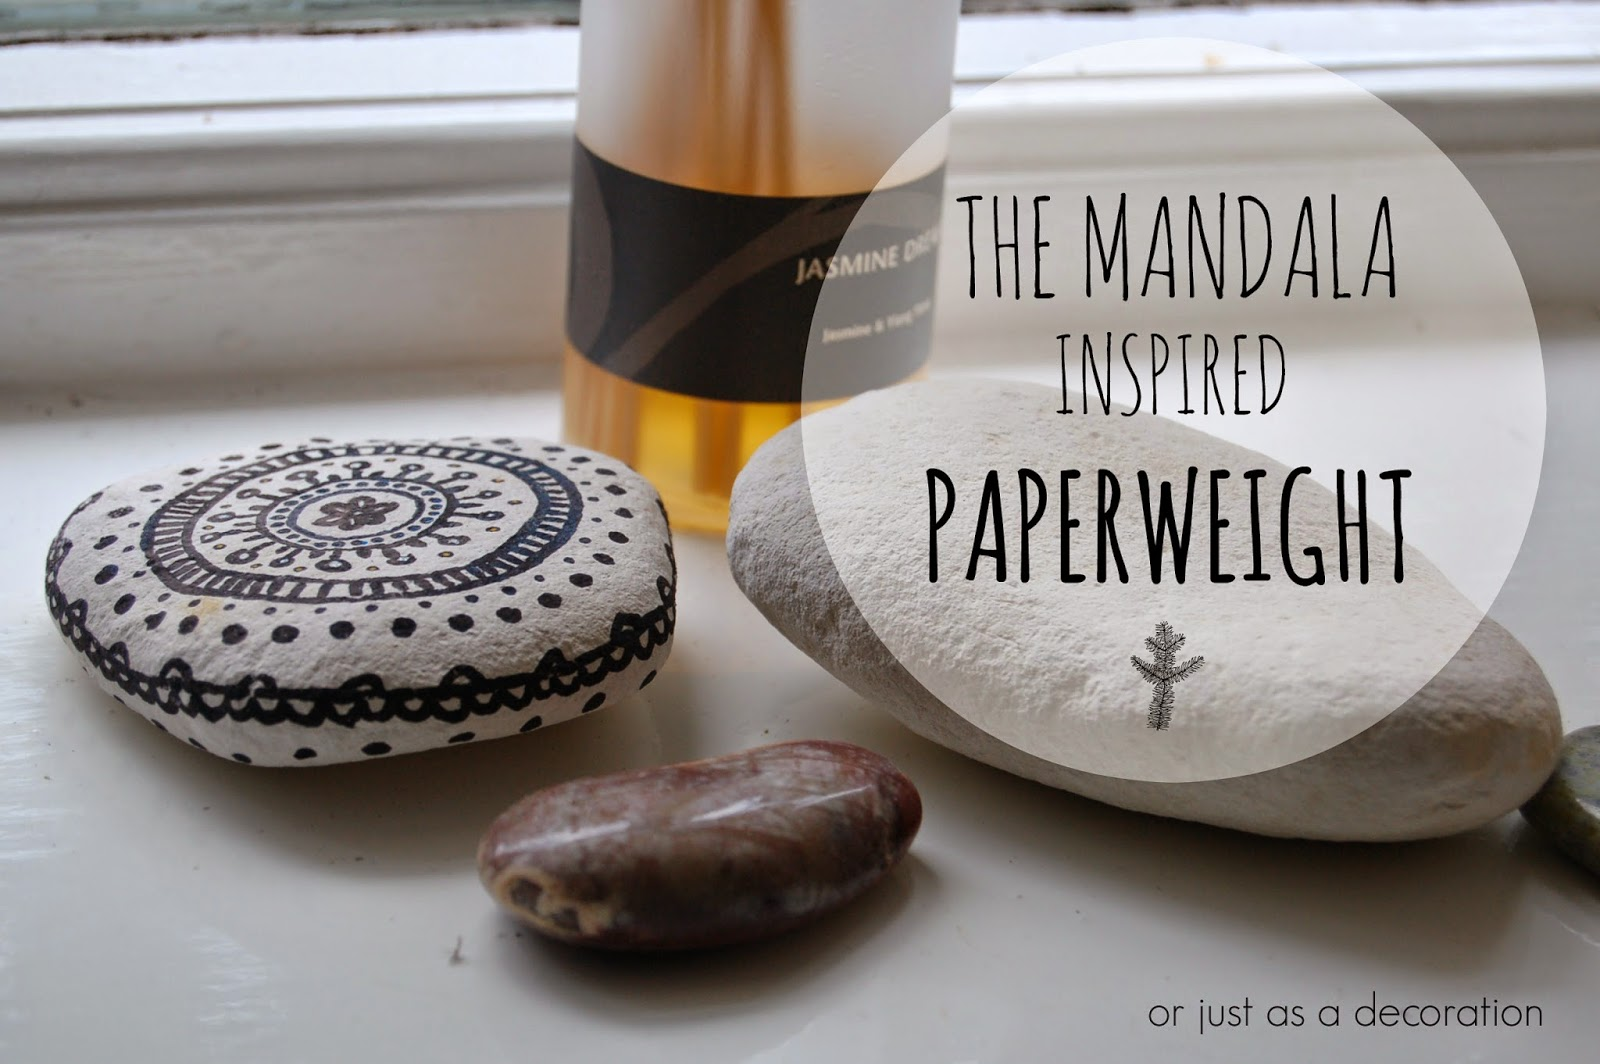 http://charnicola.blogspot.co.uk/2014/08/mandala-inspired-decorated-paper-weight.html